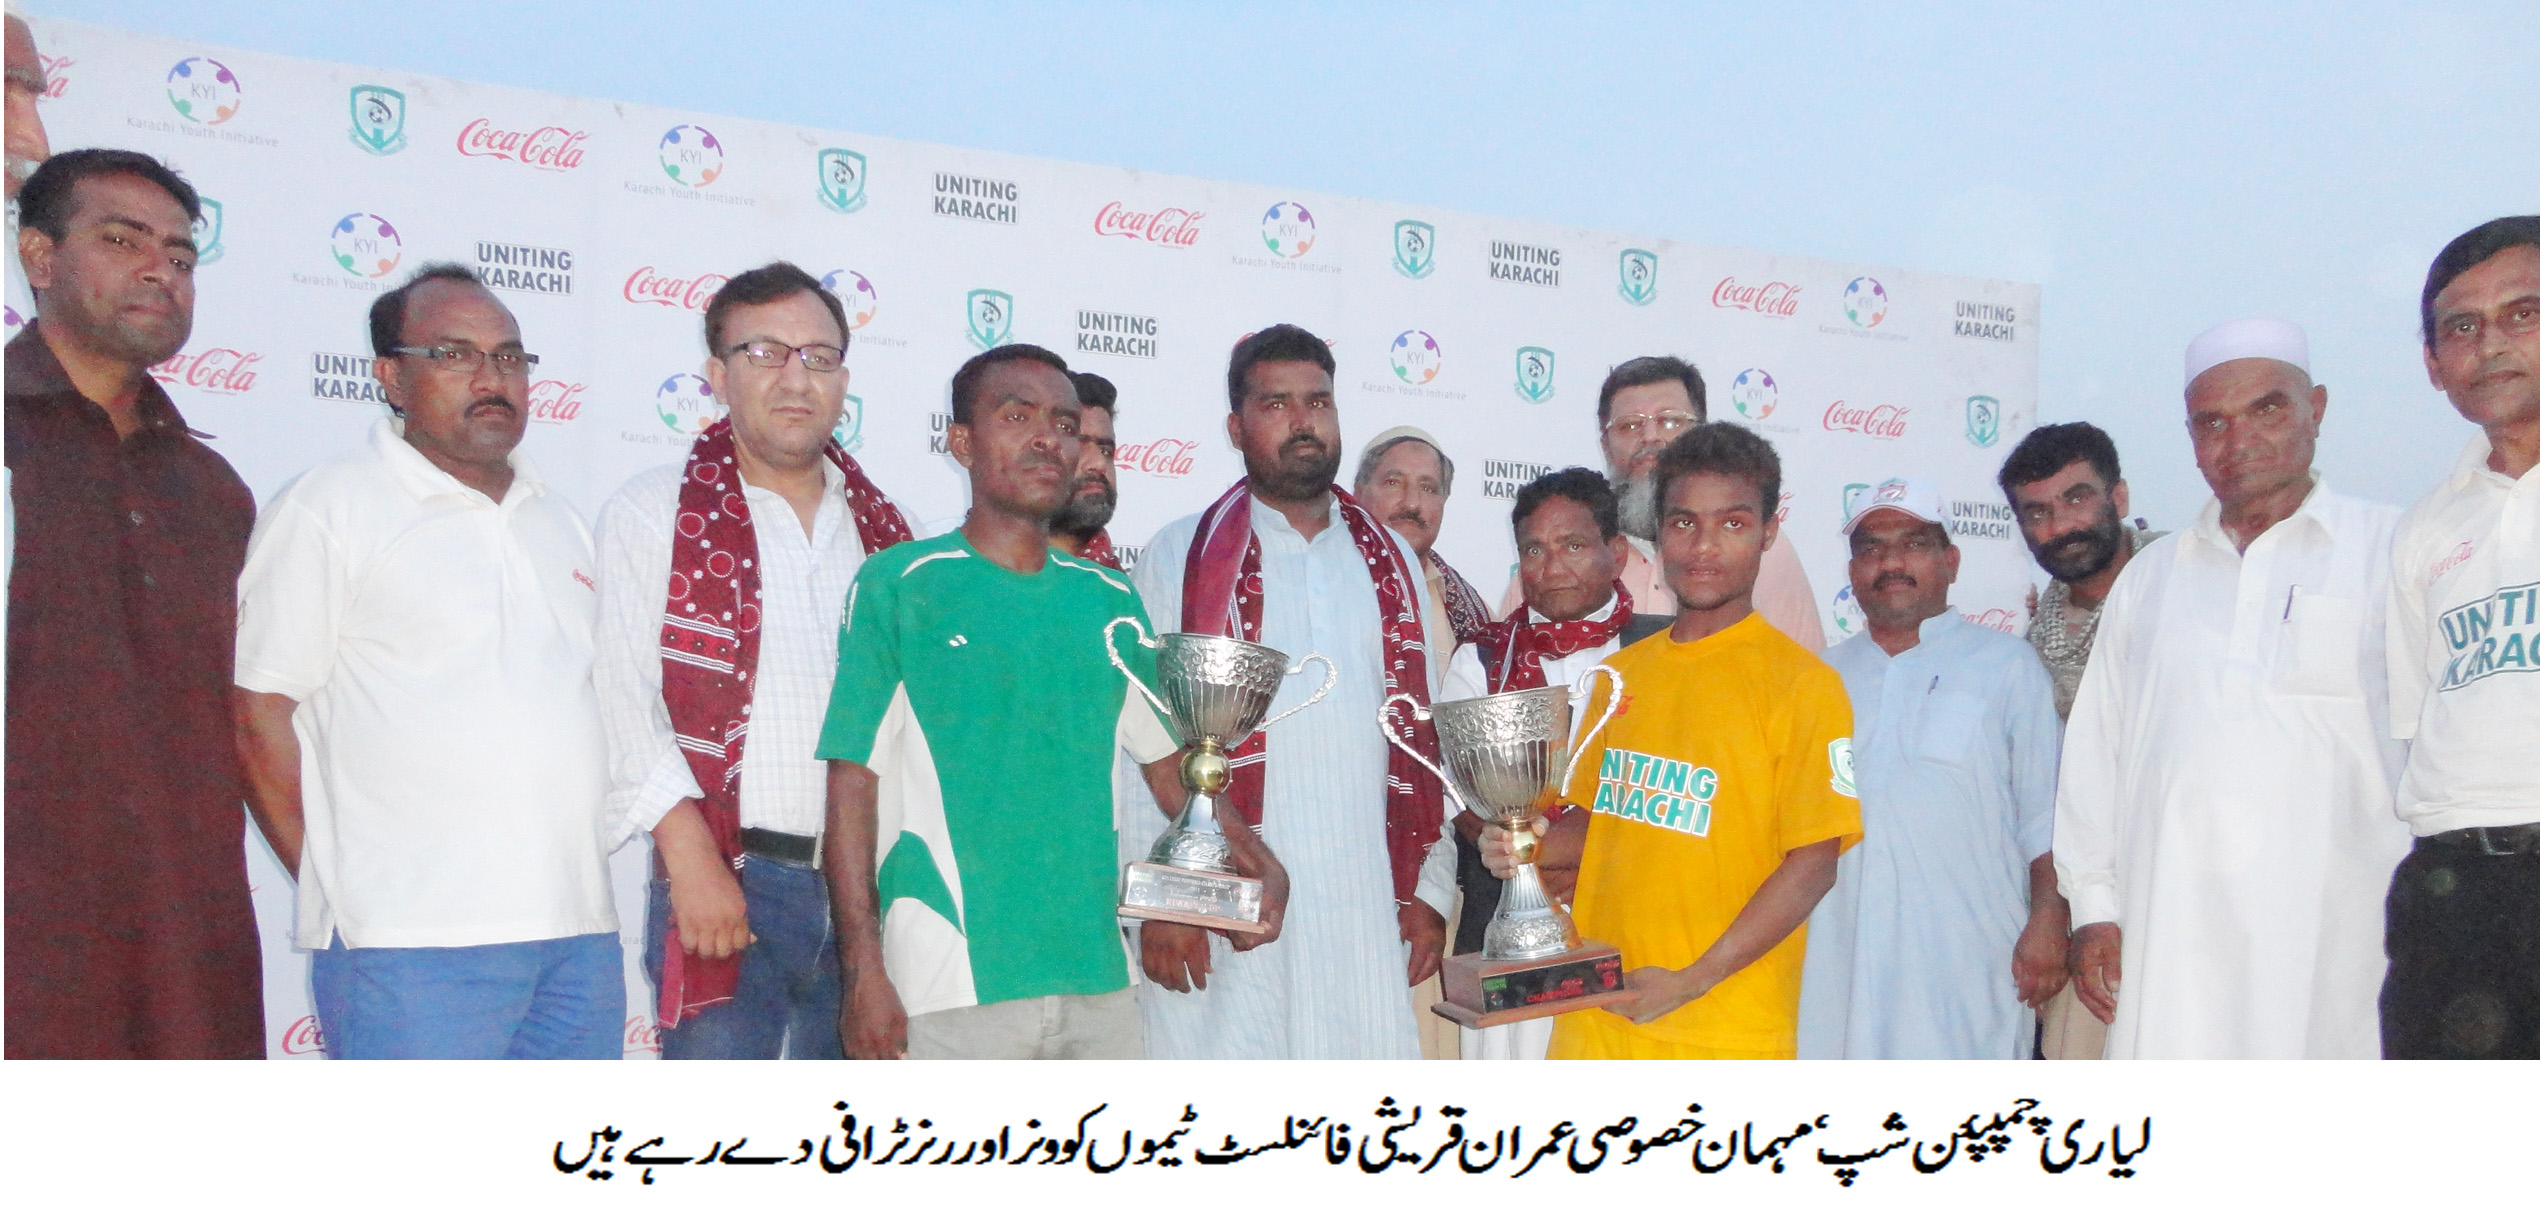 Coca-Cola Lyari Championship: Lyari Brothers emerge as winners